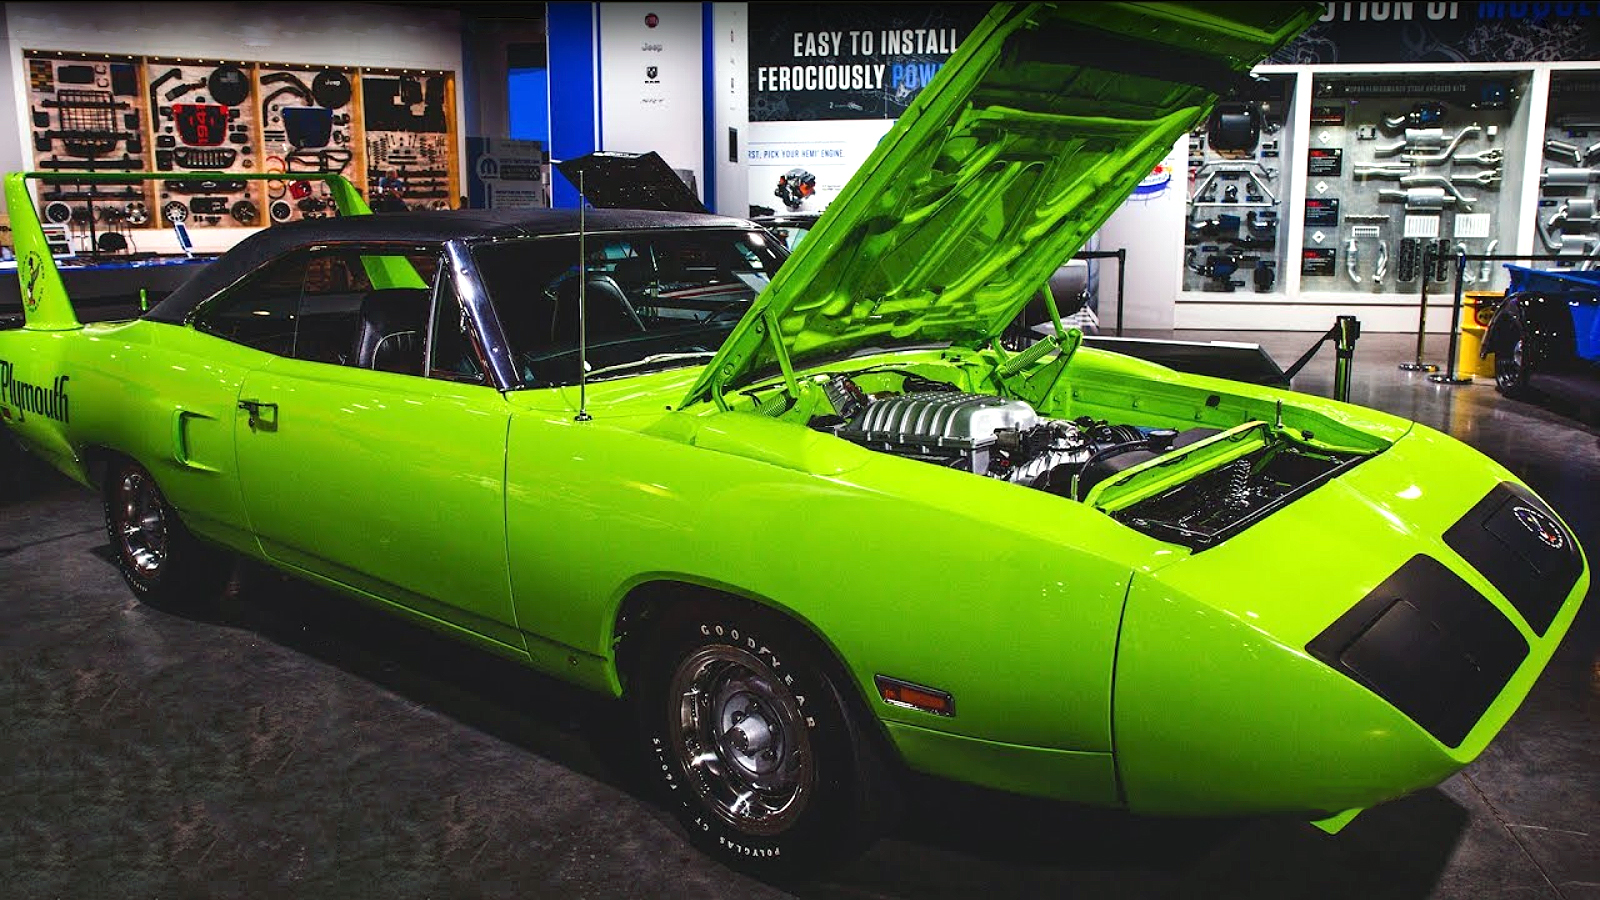 hight resolution of hellcat powered 1970 plymouth superbird by graveyard carz isuzu npr manual transmission cadillac ats black wheels